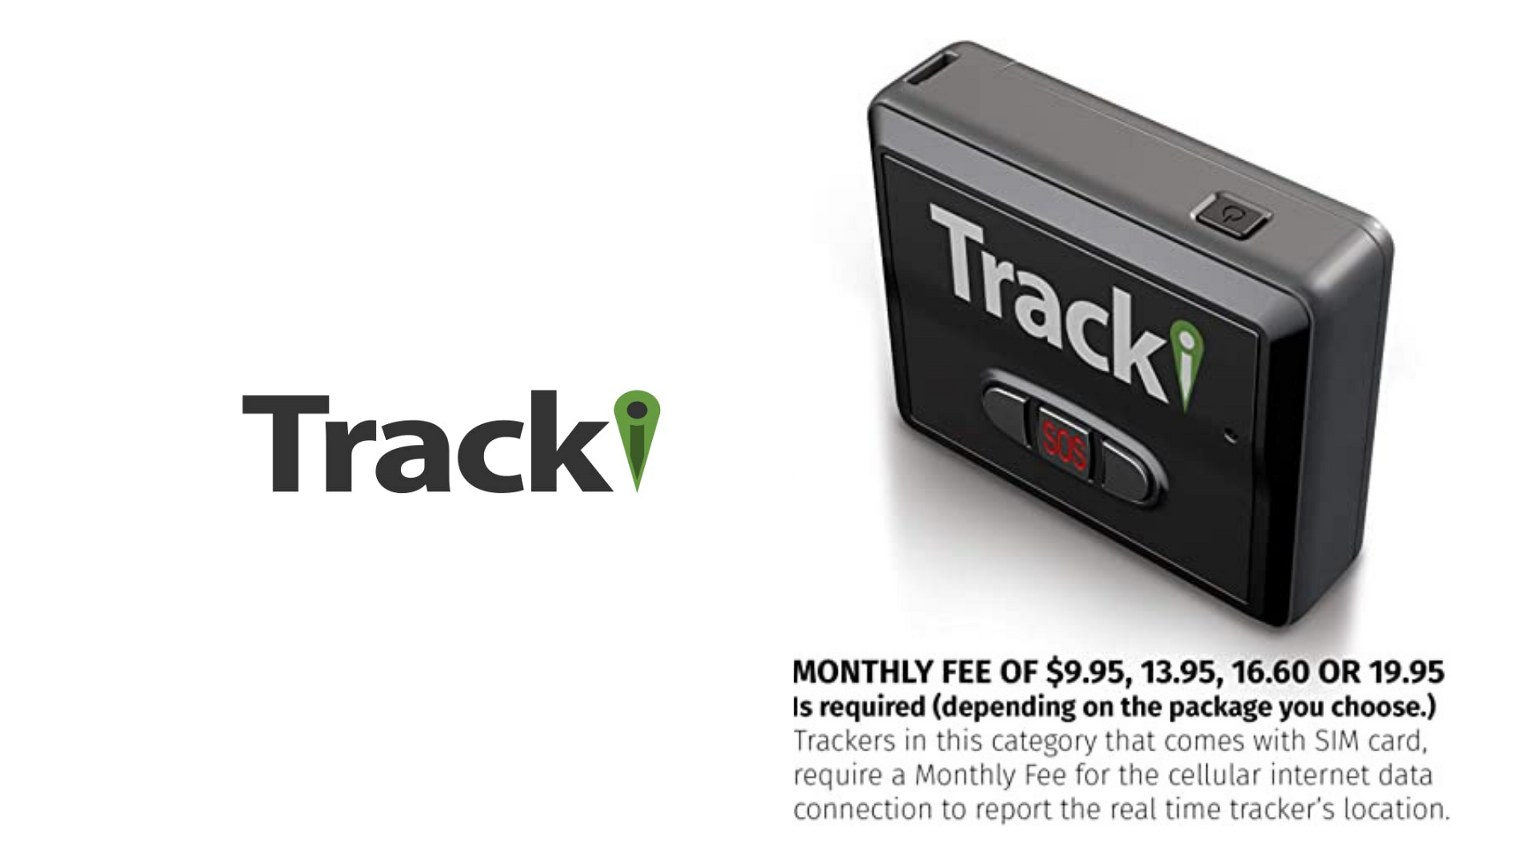 Tracki Monthly Charge